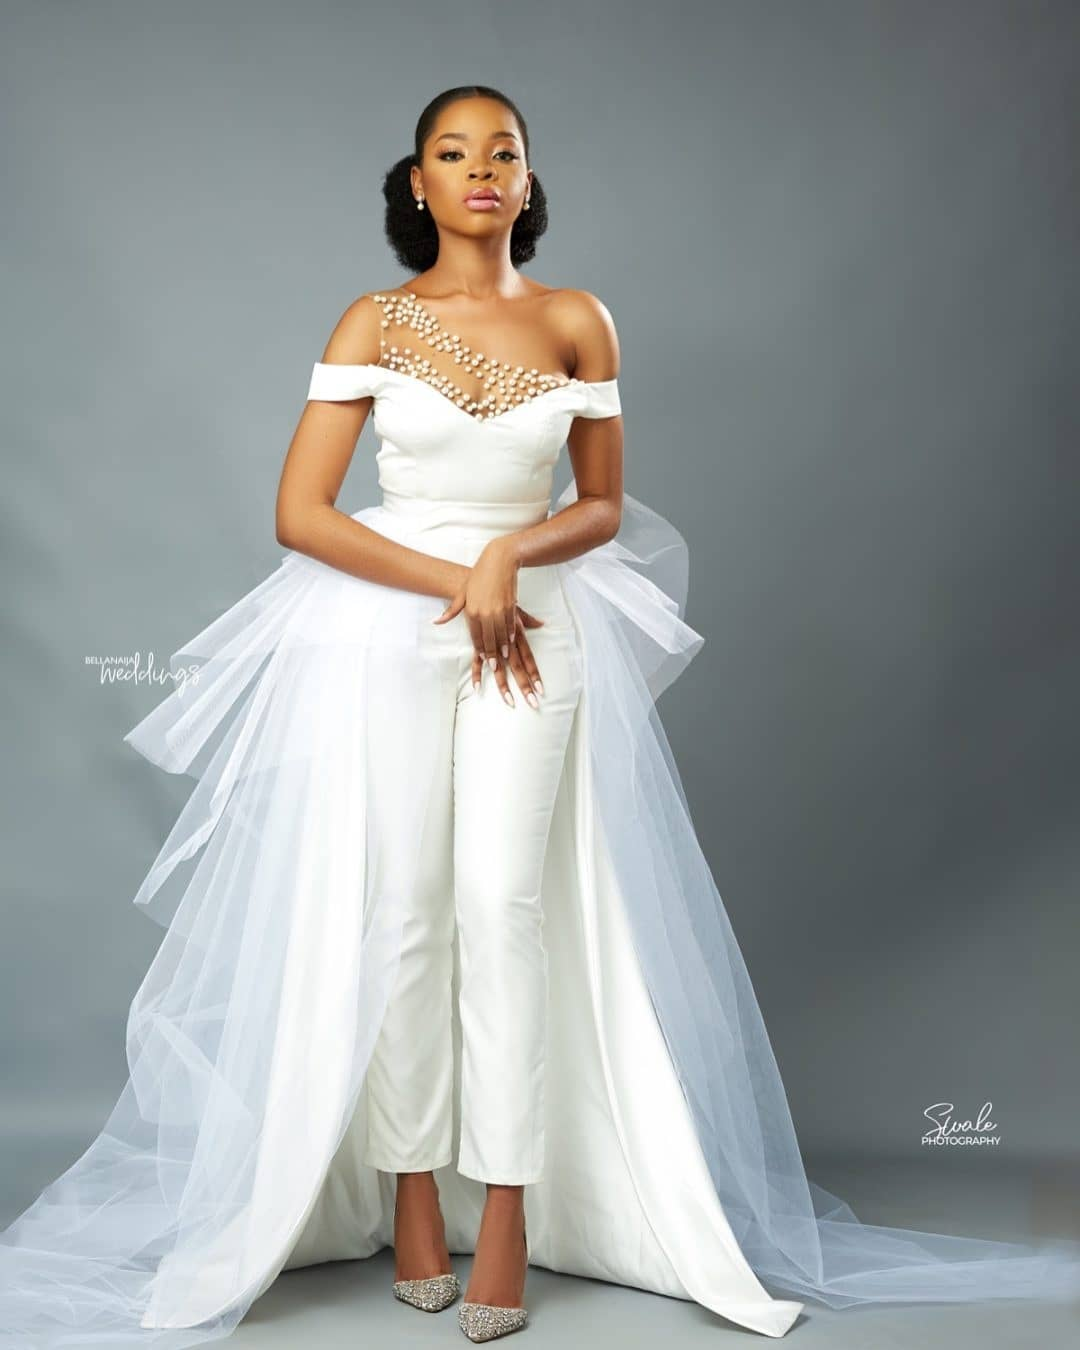 Bridal Jumsuit Style With Ruffled Capes